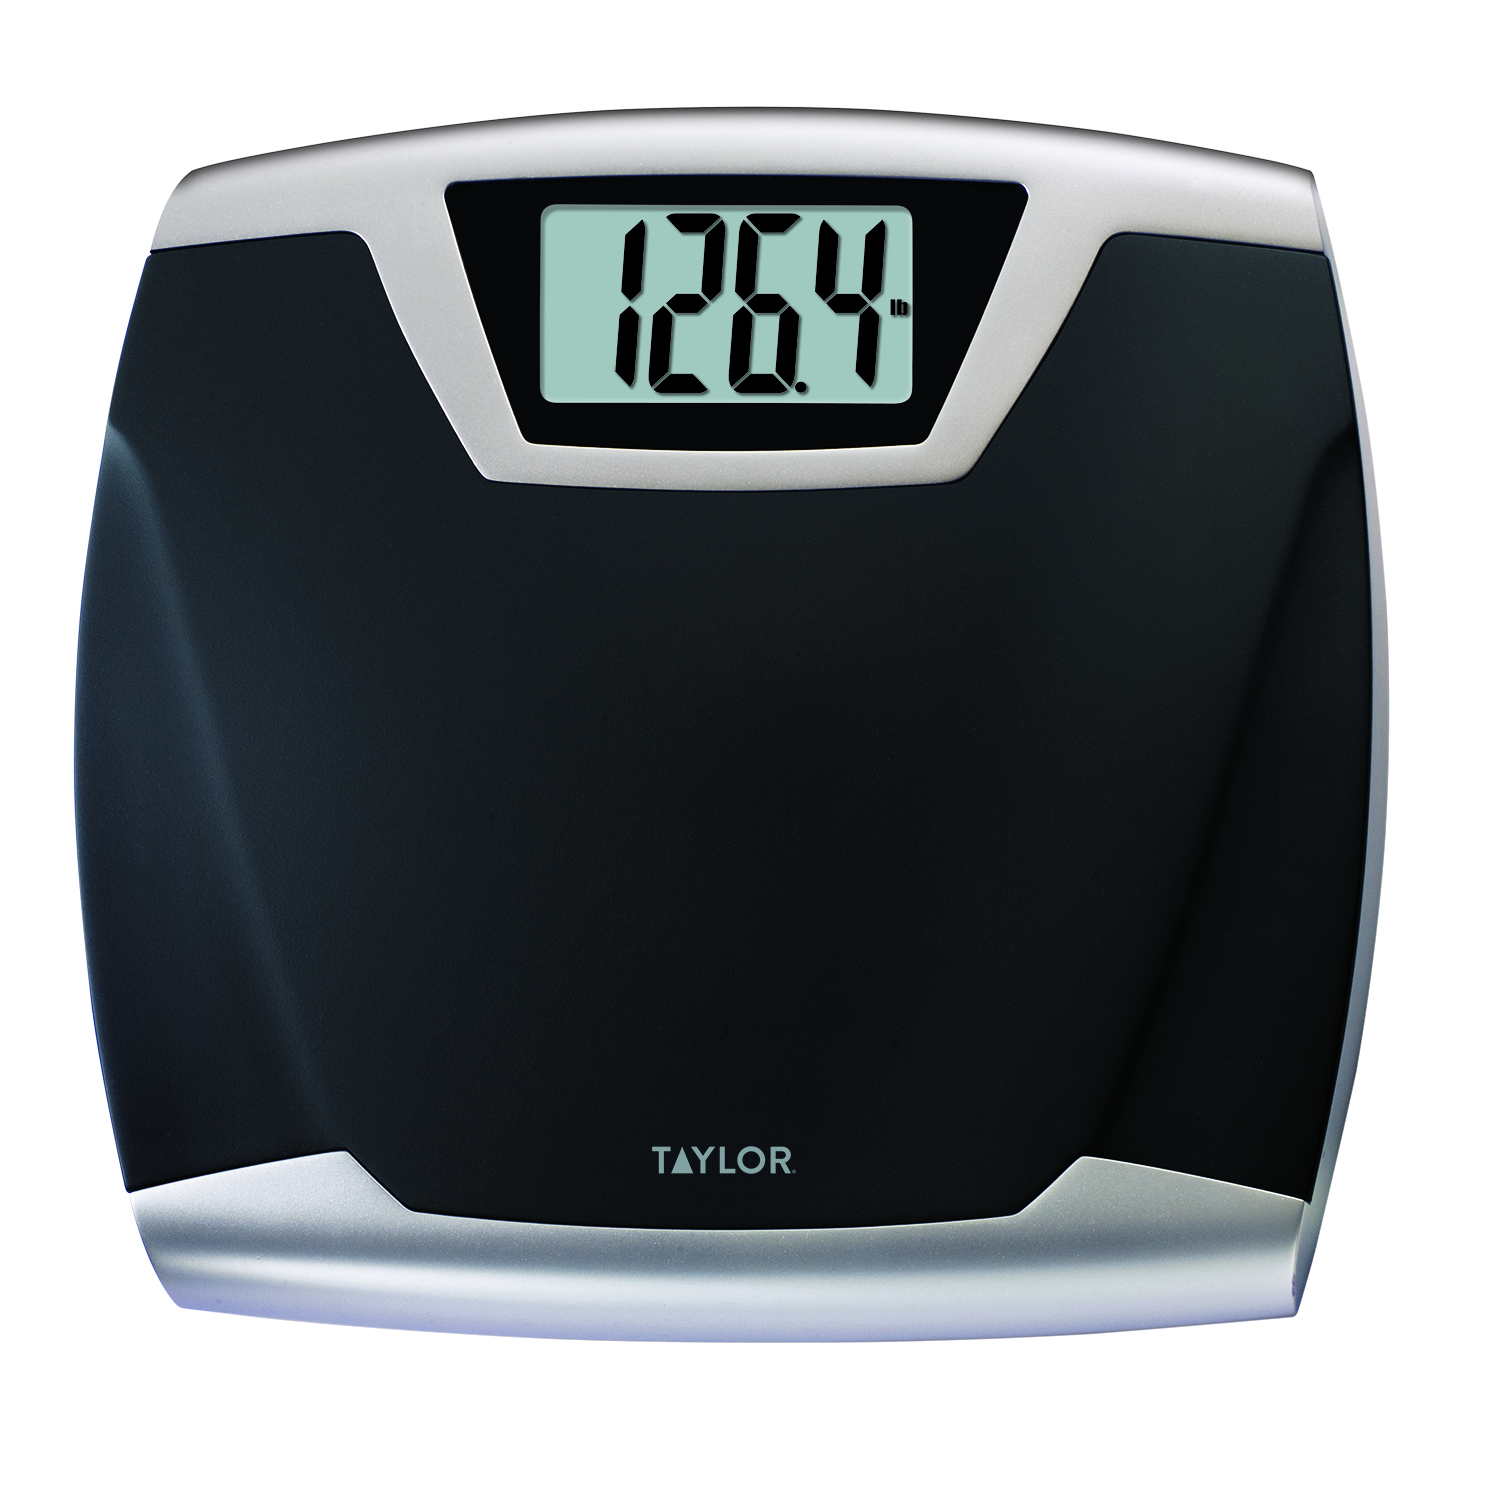 Genial Taylor Lithium Digital Thin Profile Bath Scale Model 7340